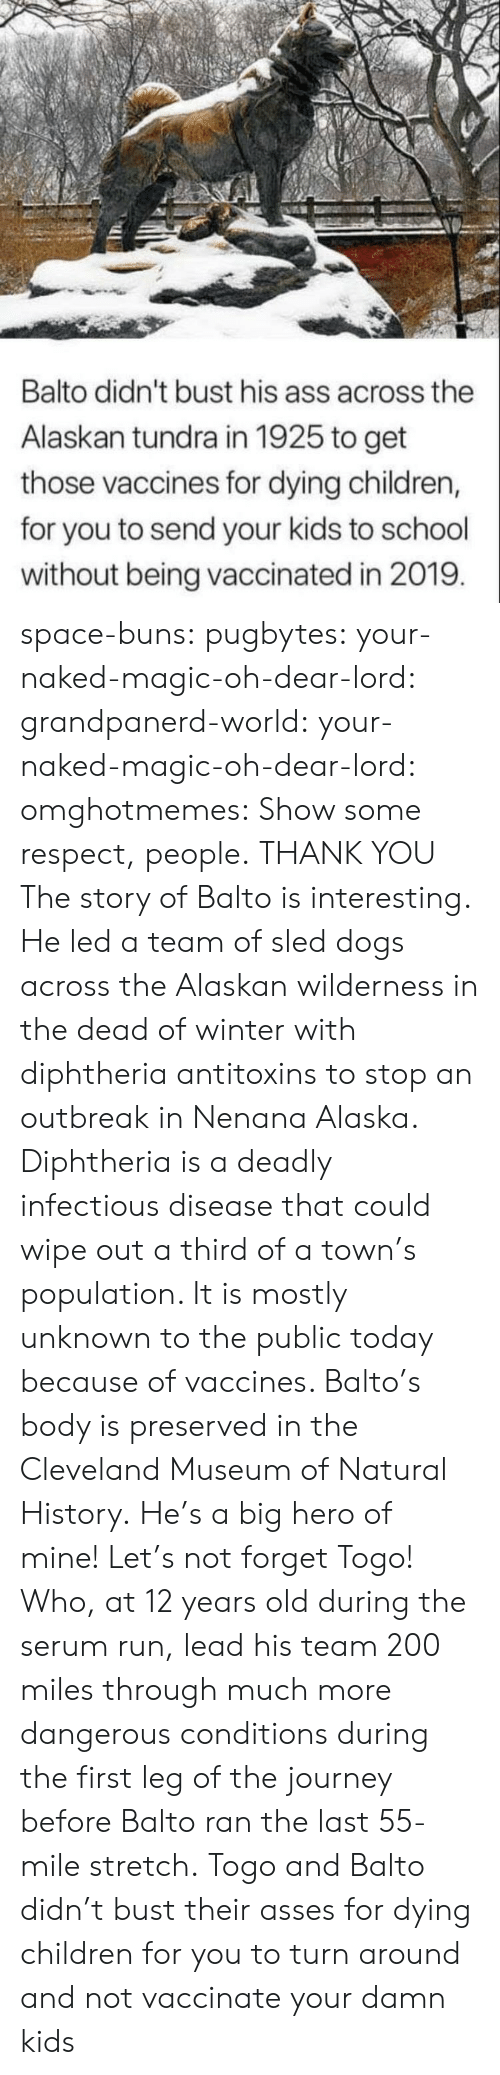 Alaska: Balto didn't bust his ass across the  Alaskan tundra in 1925 to get  those vaccines for dying children,  for you to send your kids to school  without being vaccinated in 2019 space-buns:  pugbytes:   your-naked-magic-oh-dear-lord:  grandpanerd-world:   your-naked-magic-oh-dear-lord:  omghotmemes: Show some respect, people.  THANK YOU   The story of Balto is interesting. He led a team of sled dogs across the Alaskan wilderness in the dead of winter with diphtheria antitoxins to stop an outbreak in Nenana Alaska. Diphtheria is a deadly infectious disease that could wipe out a third of a town's population. It is mostly unknown to the public today because of vaccines. Balto's body is preserved in the Cleveland Museum of Natural History.   He's a big hero of mine!   Let's not forget Togo! Who, at 12 years old during the serum run, lead his team 200 miles through much more dangerous conditions during the first leg of the journey before Balto ran the last 55-mile stretch.   Togo and Balto didn't bust their asses for dying children for you to turn around and not vaccinate your damn kids